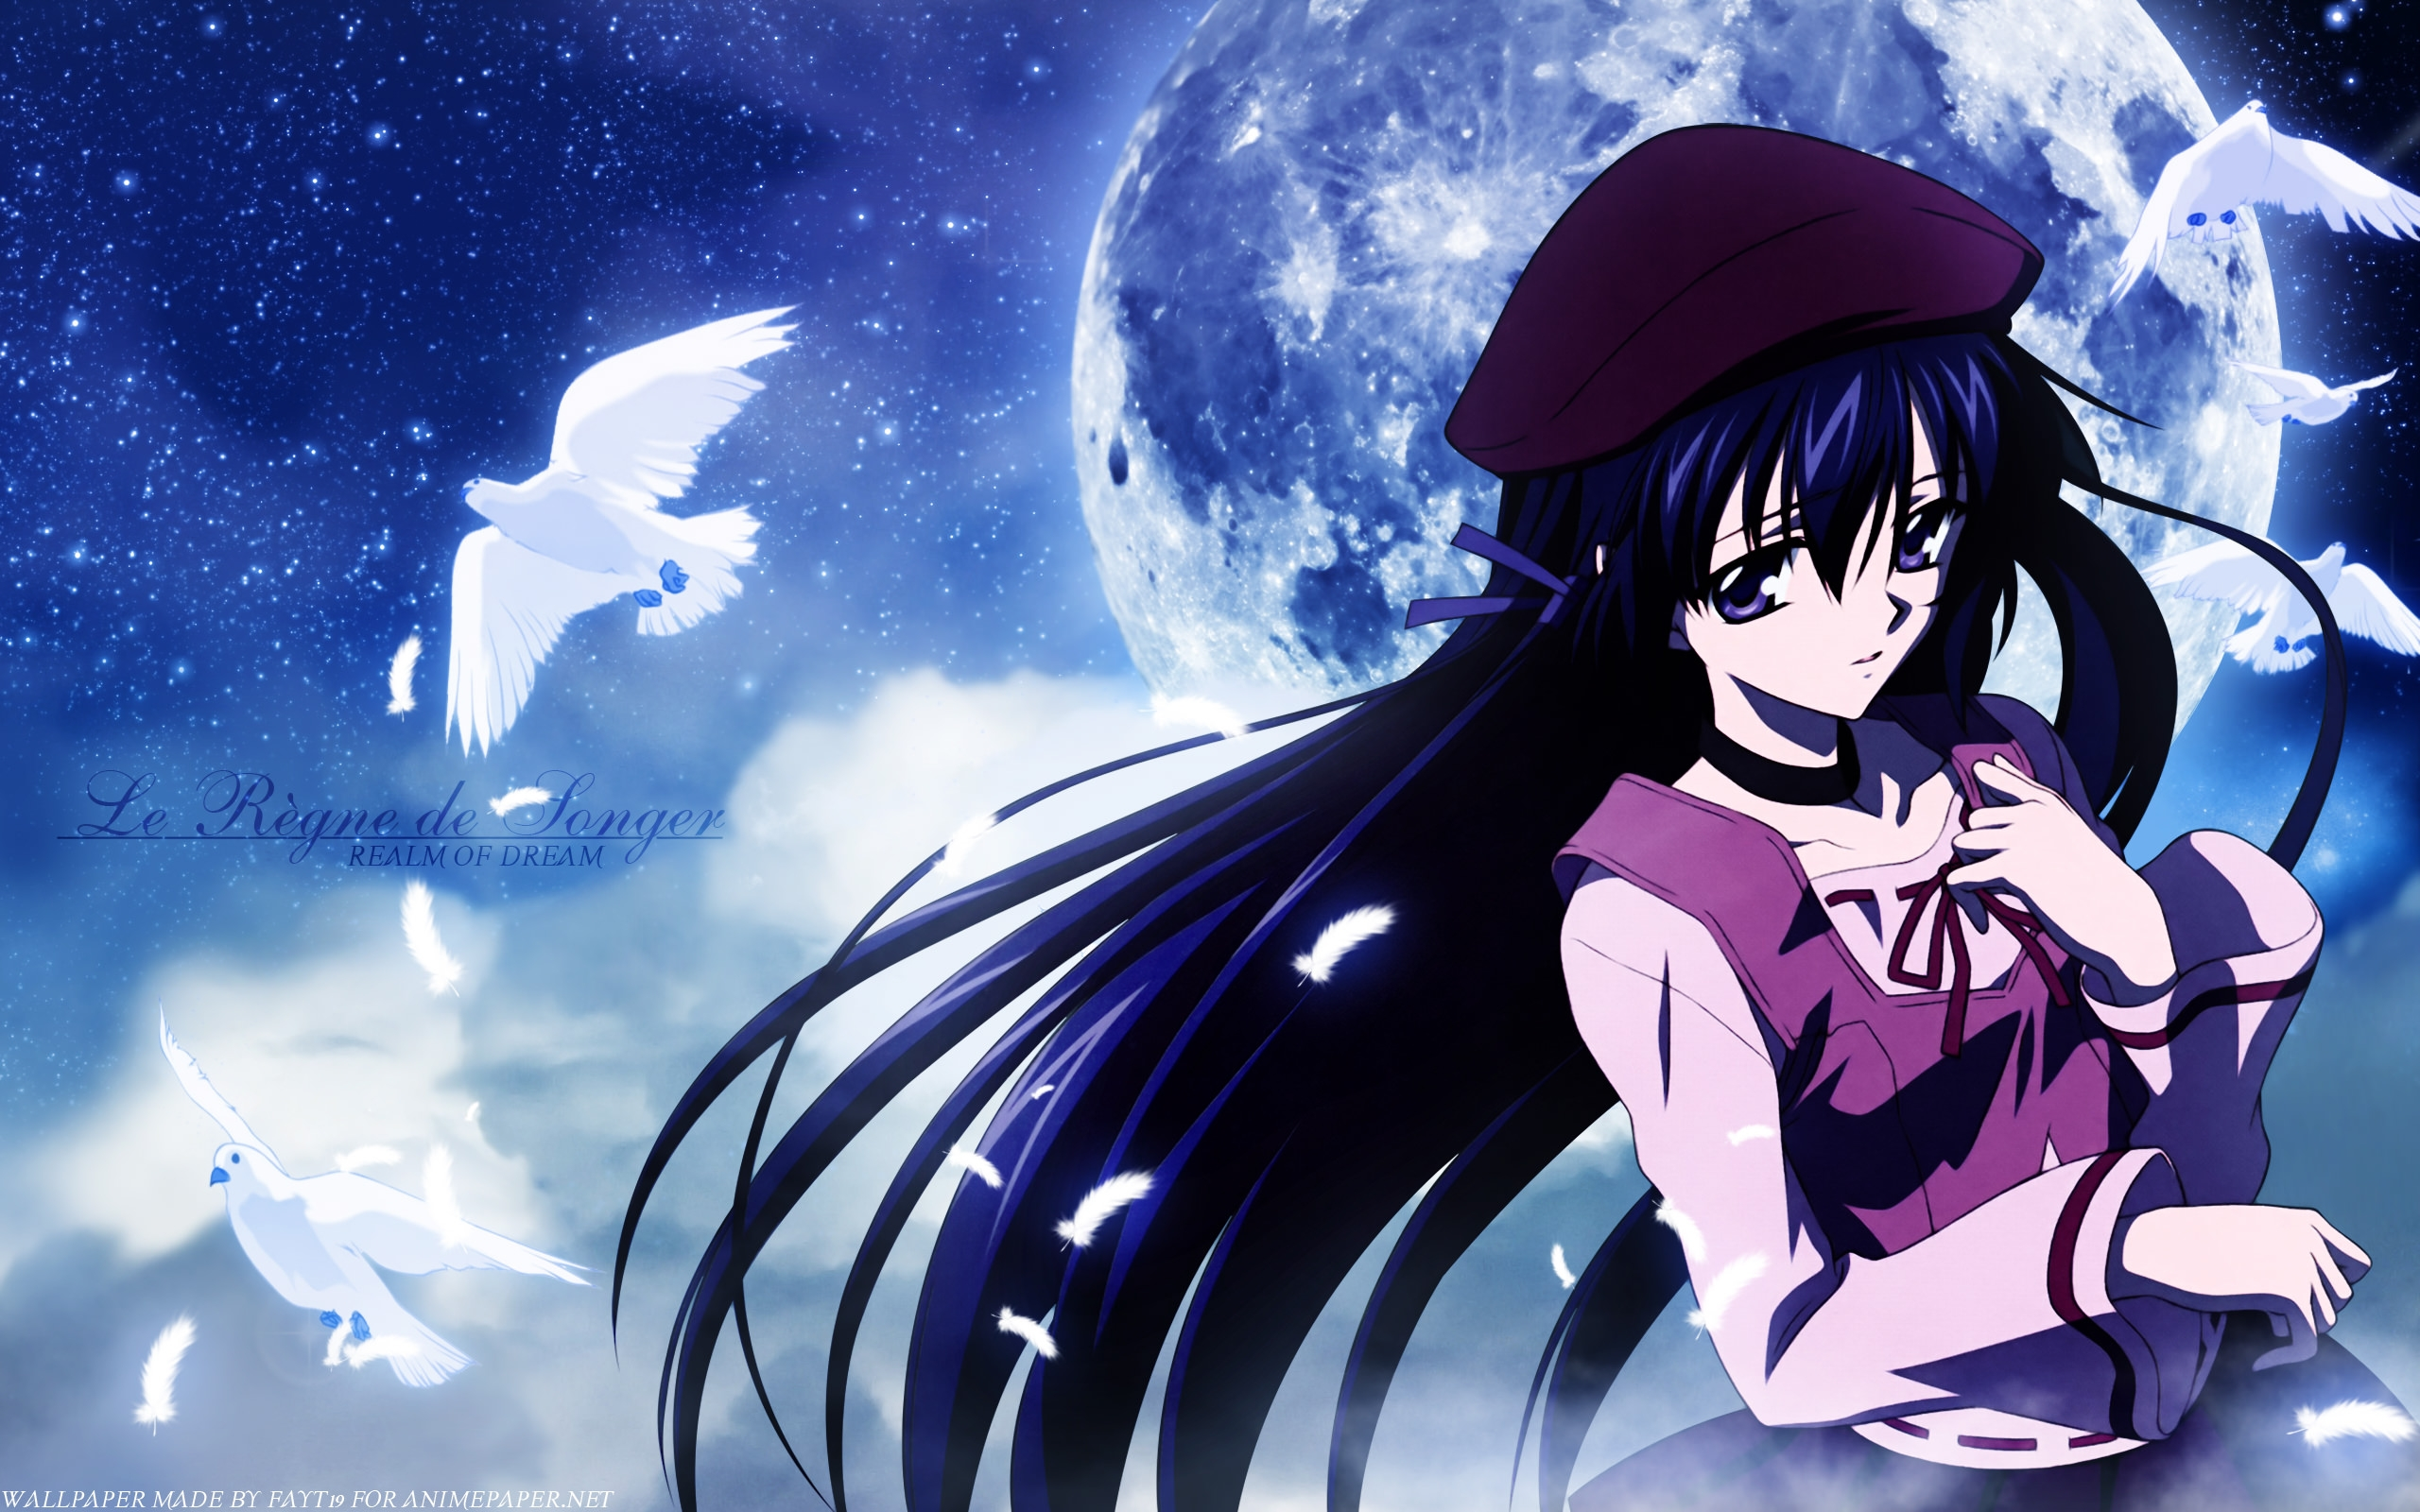 20 anime backgrounds wallpapers images freecreatives - Images fille manga ...